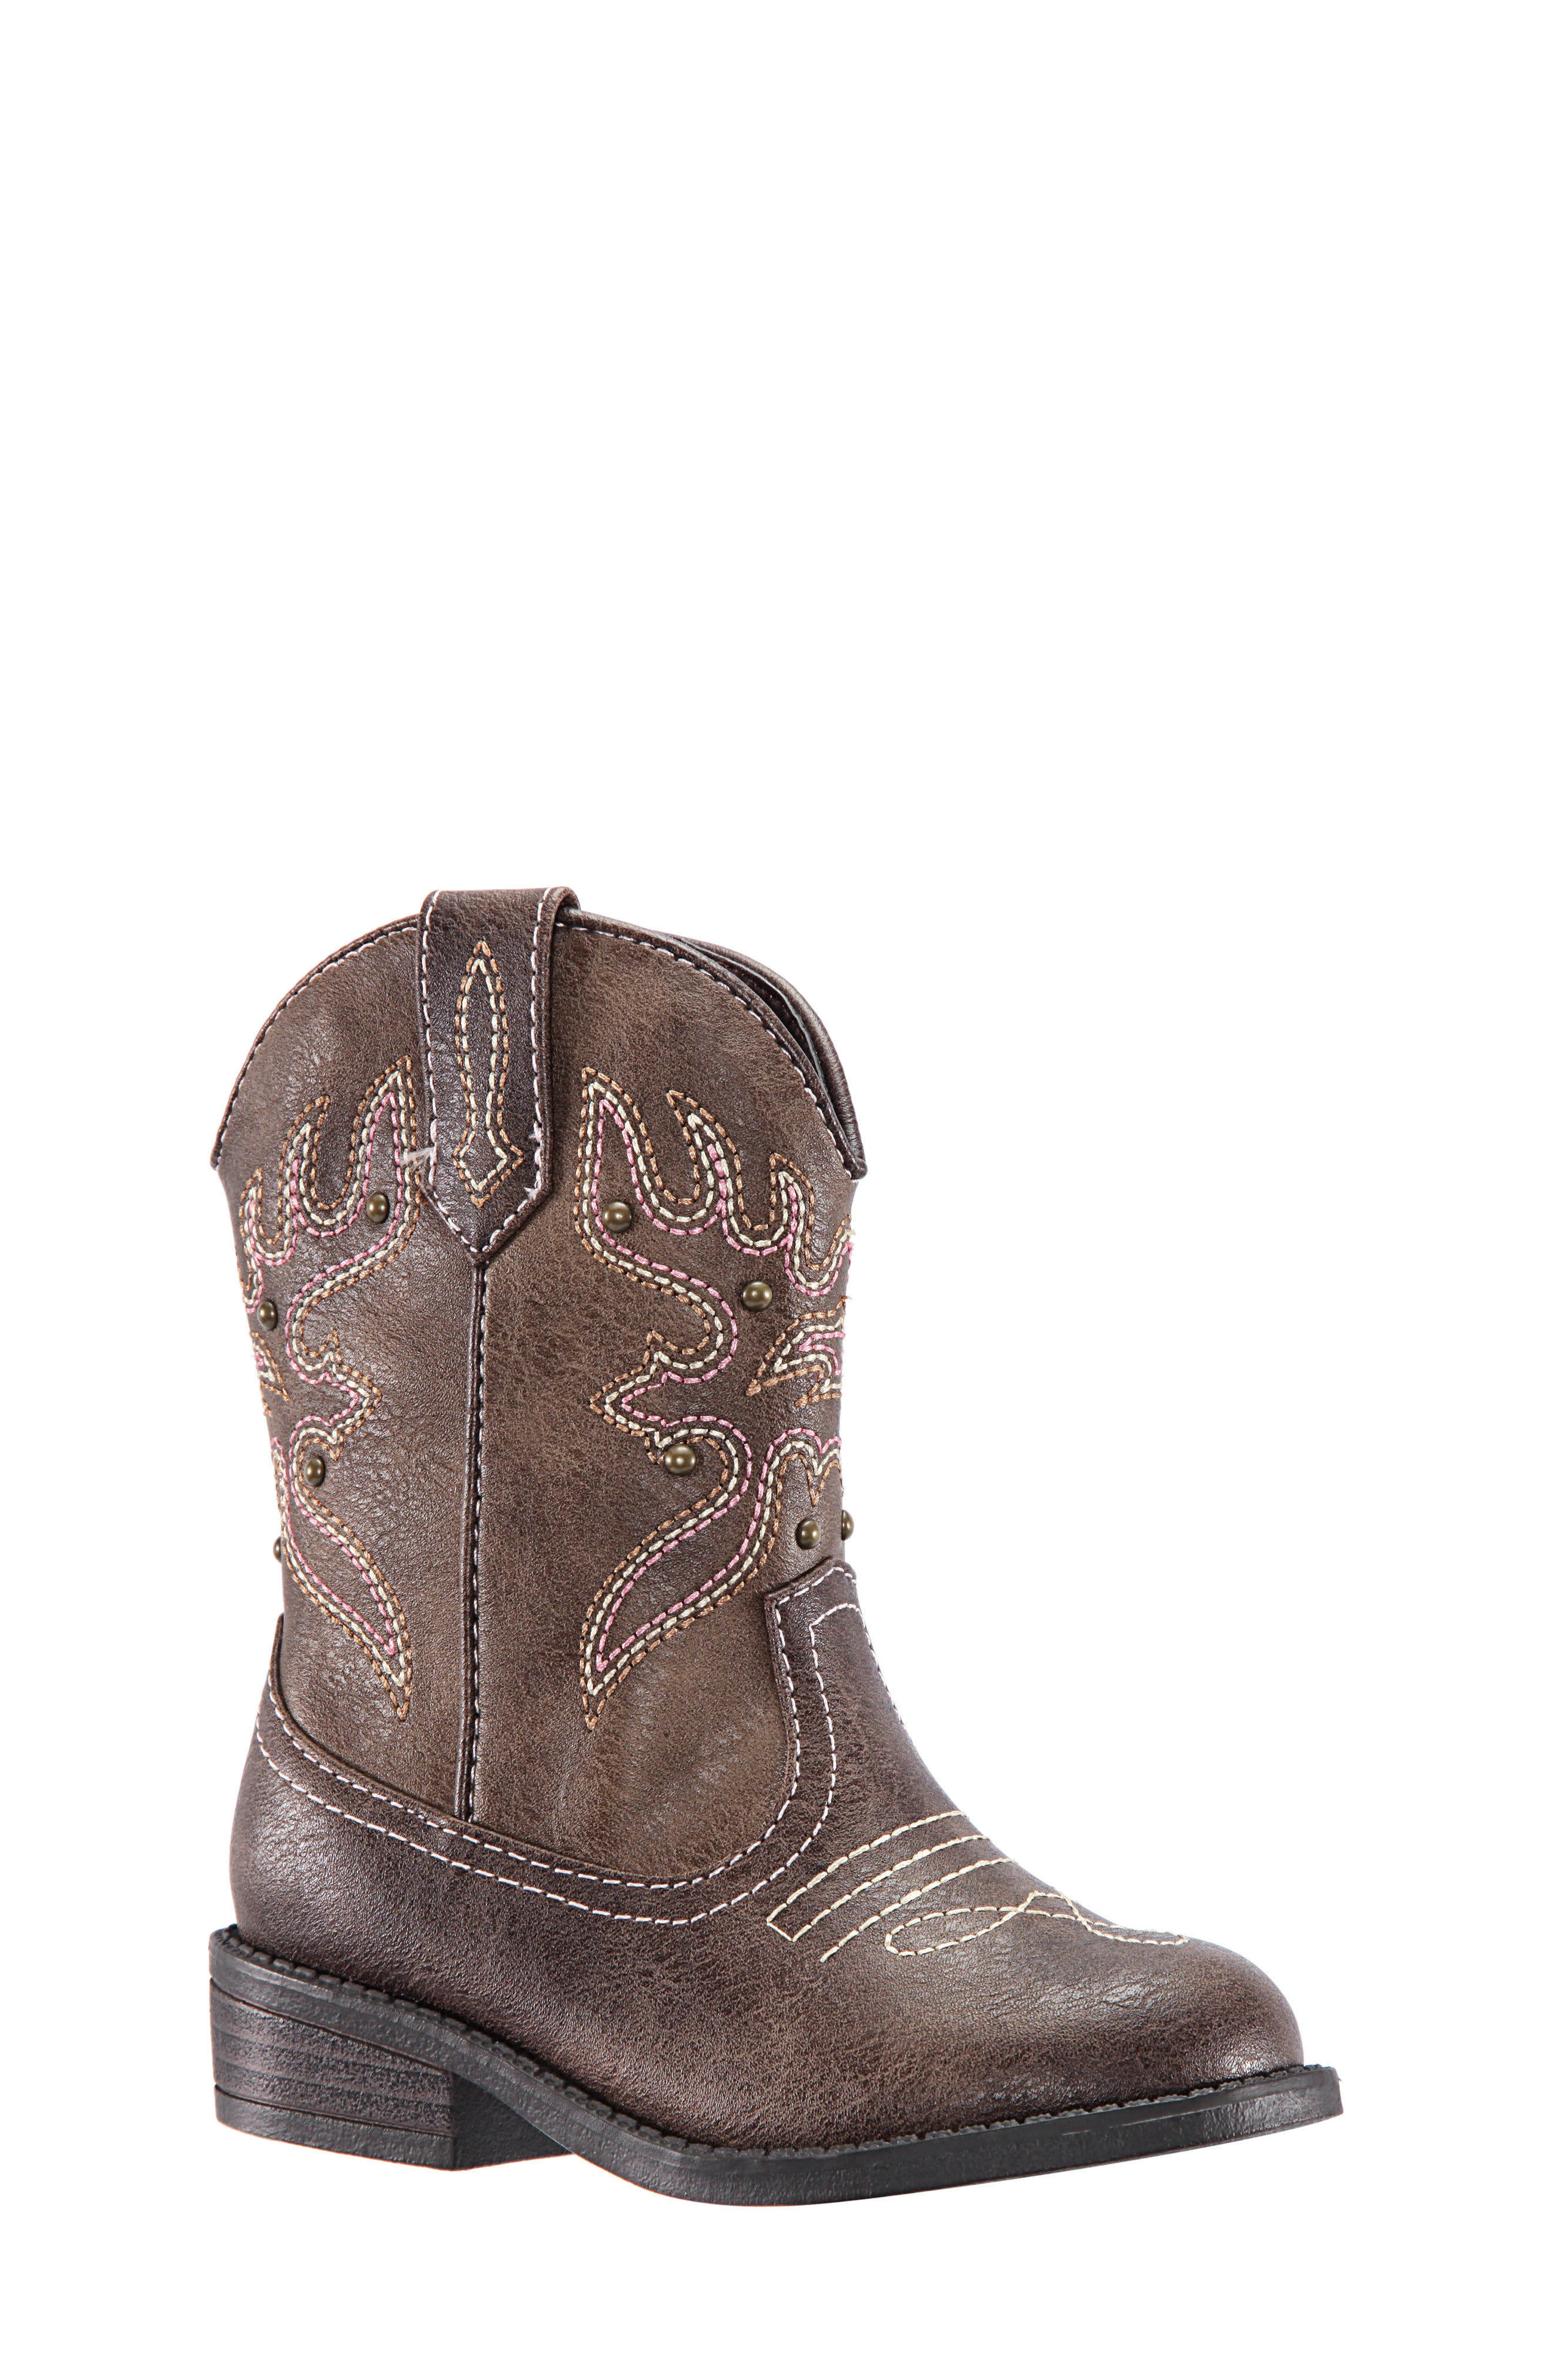 Mirabele Cowboy Boot,                             Main thumbnail 1, color,                             BROWN